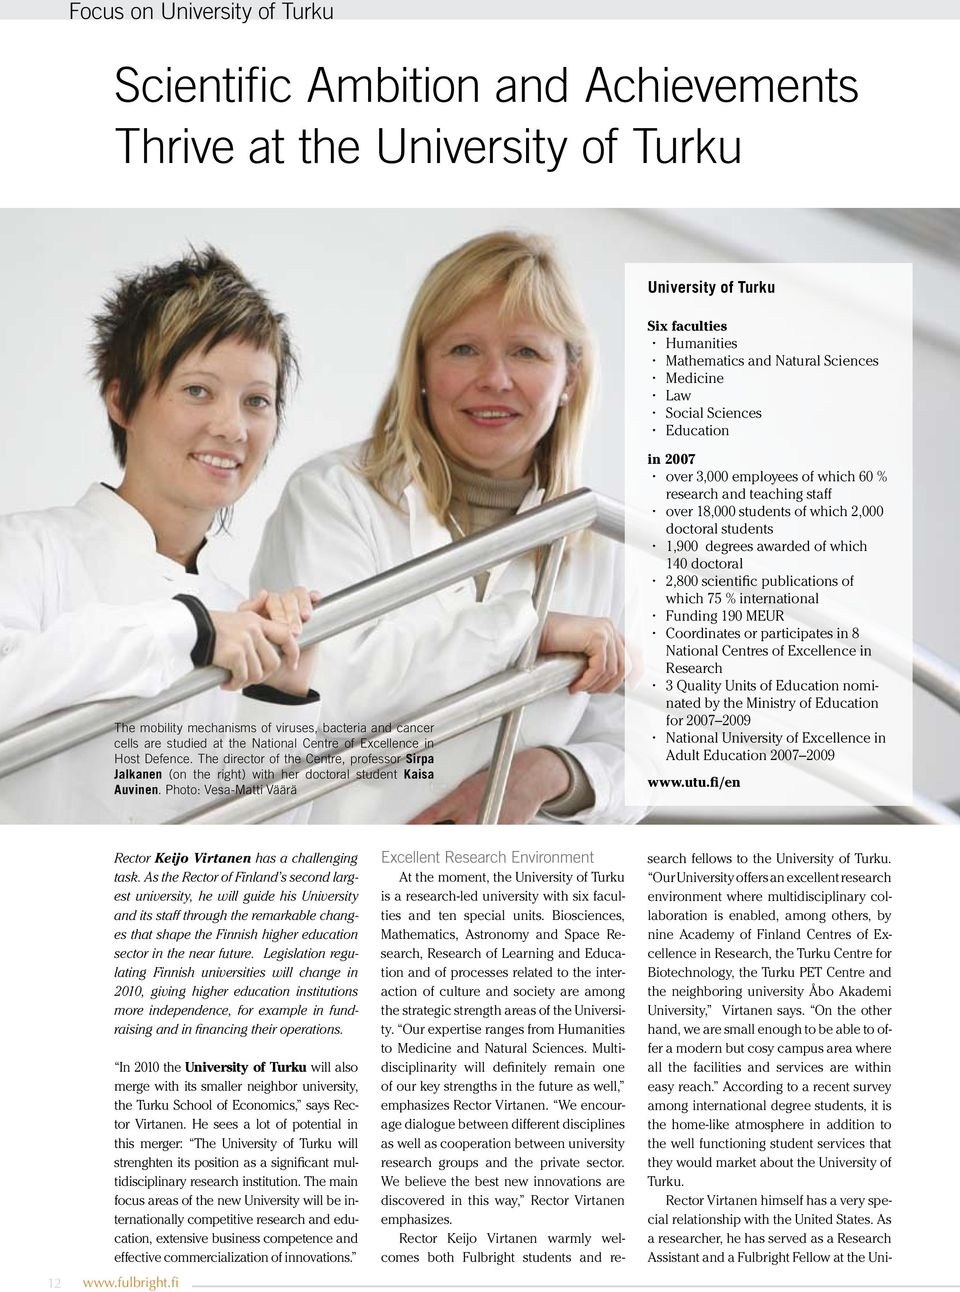 The director of the Centre, professor Sirpa Jalkanen (on the right) with her doctoral student Kaisa Auvinen.